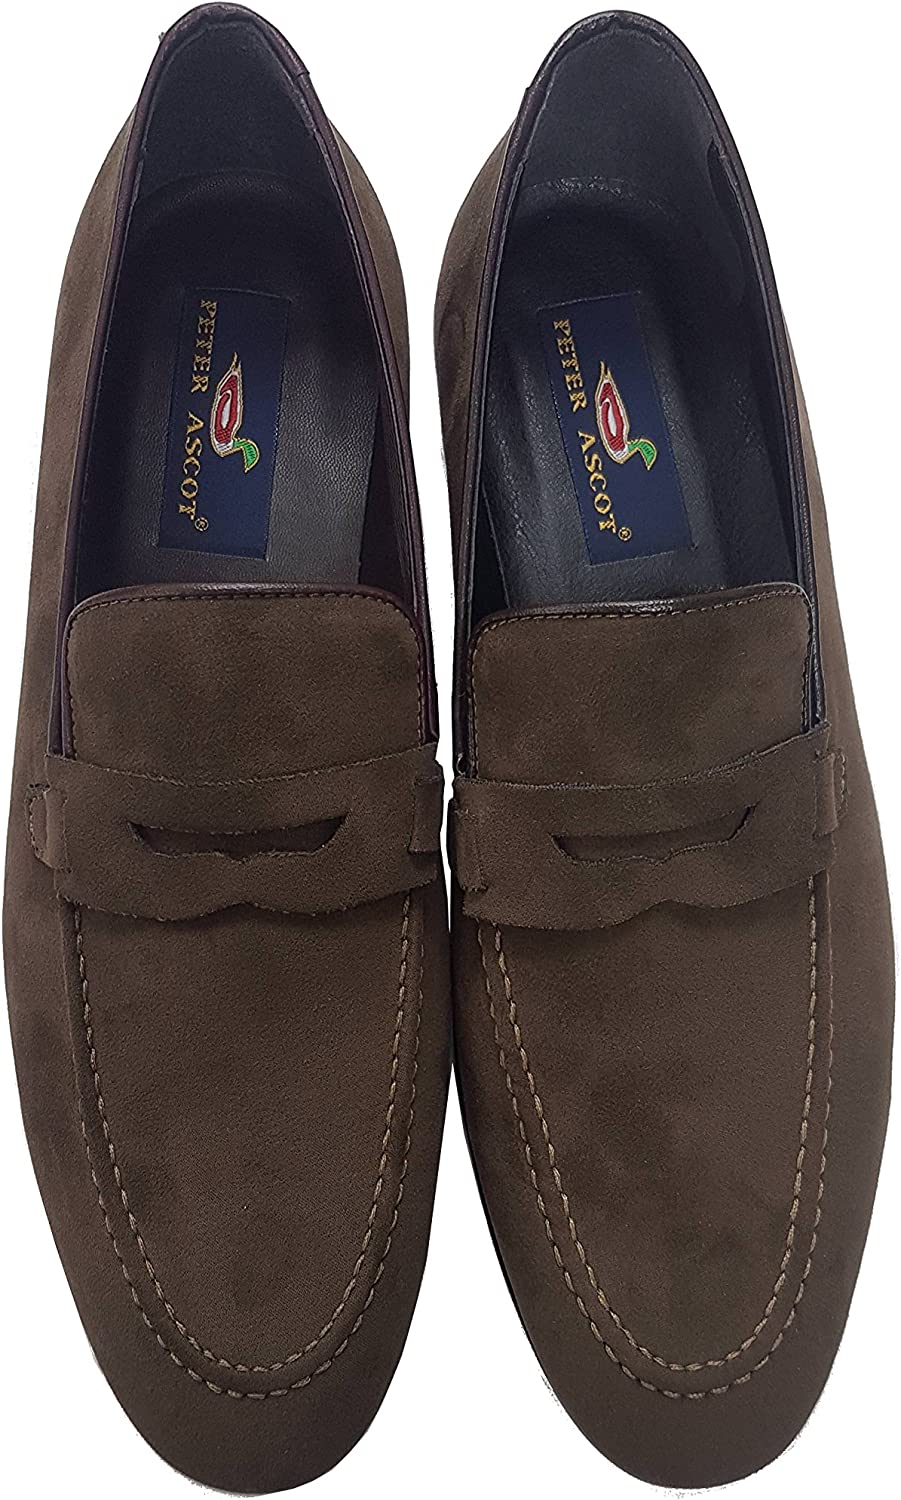 Peter Ascot Model 830, Suede shoes, Mocassin for Man, Made in